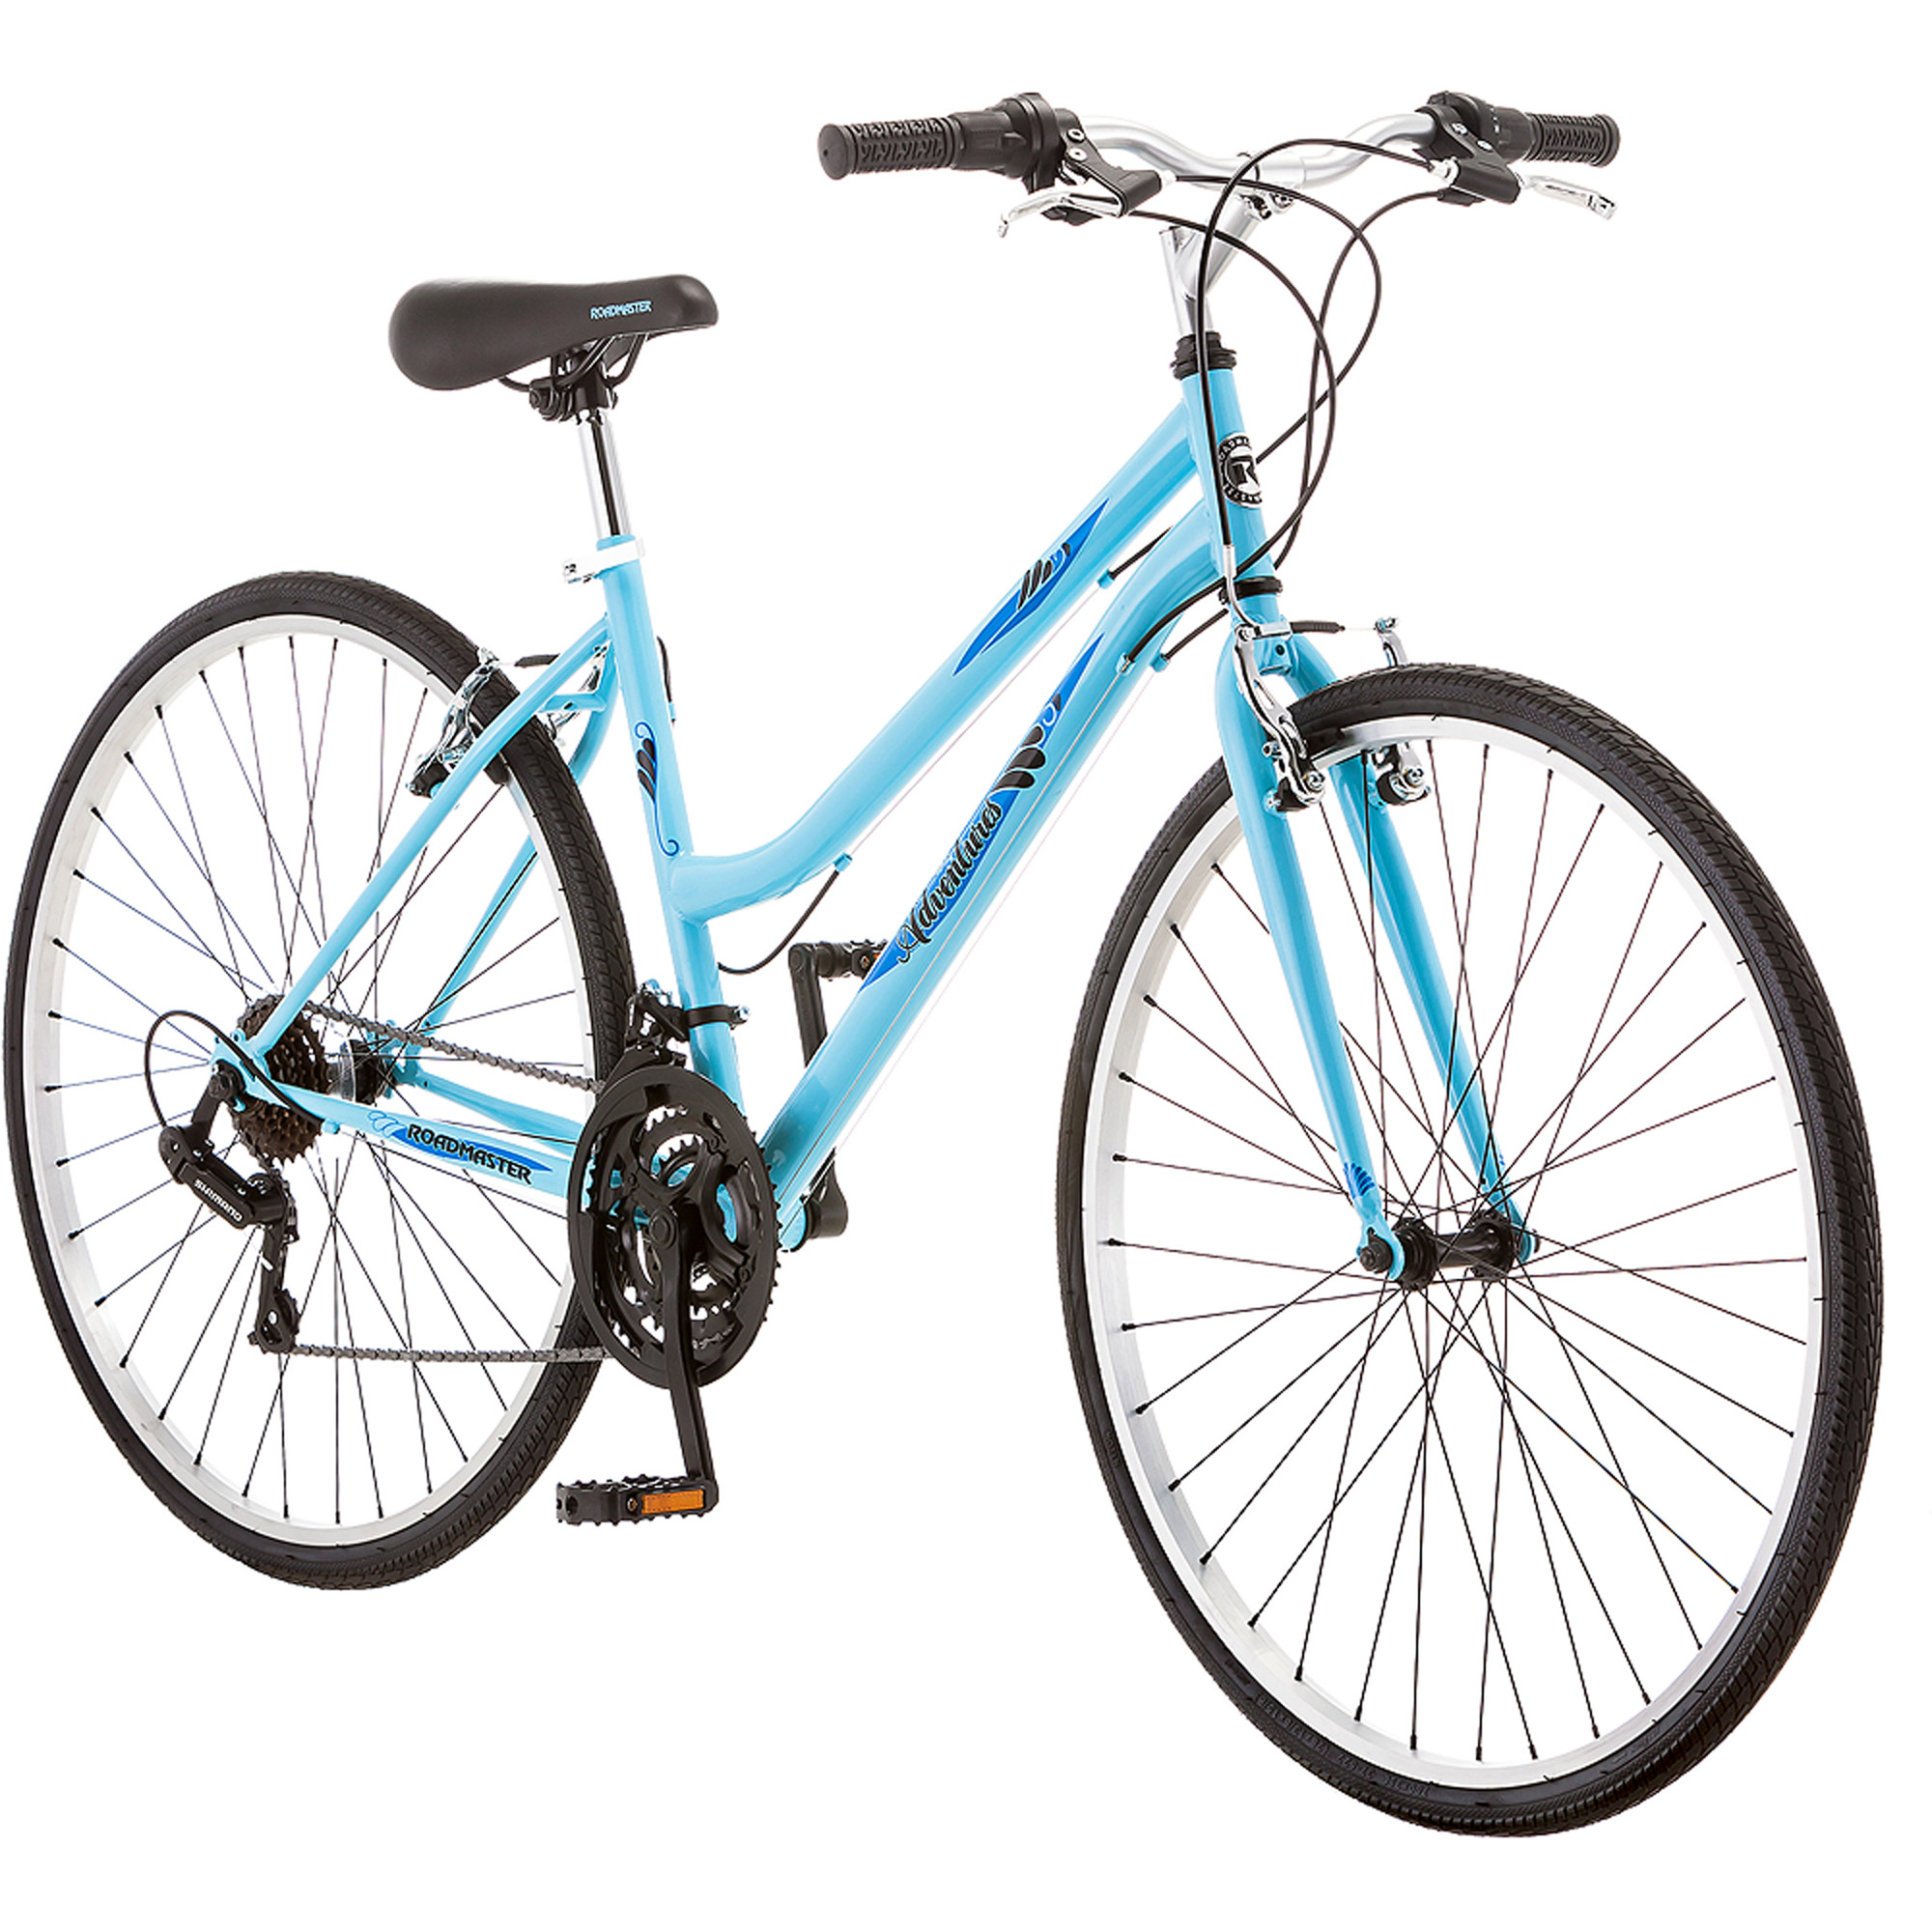 700c Roadmaster Adventures Women's Hybrid Bike, Light Blue